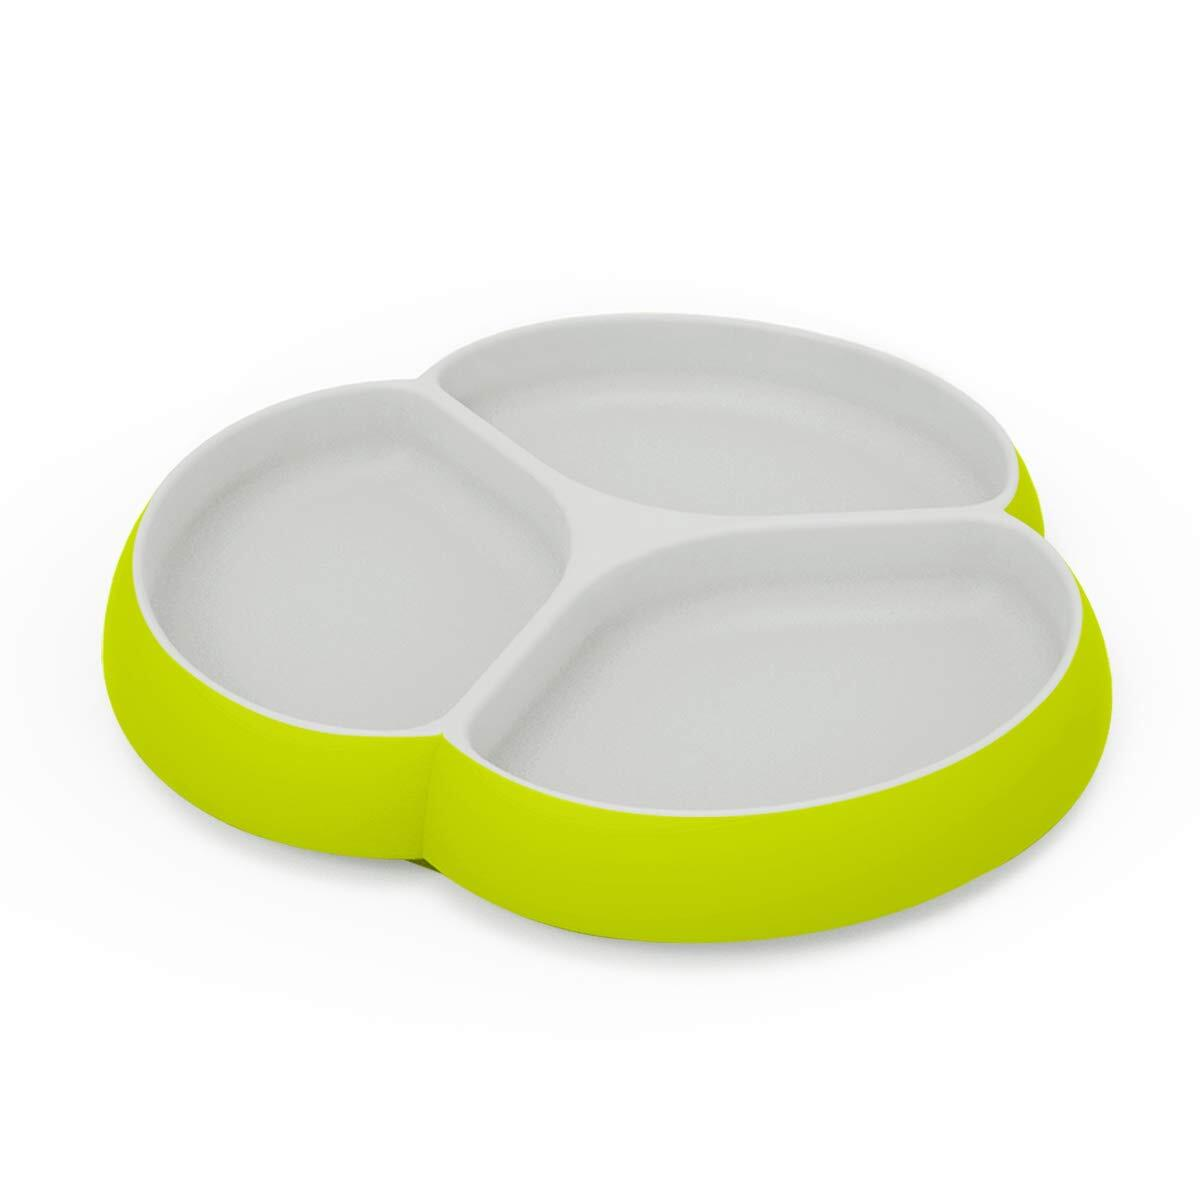 Silicone Suction Baby Plates - SILIVO Non Slip Toddler Plates for Babies, Kids and Children, Microwave & Dishwasher Safe – Lime/Gray